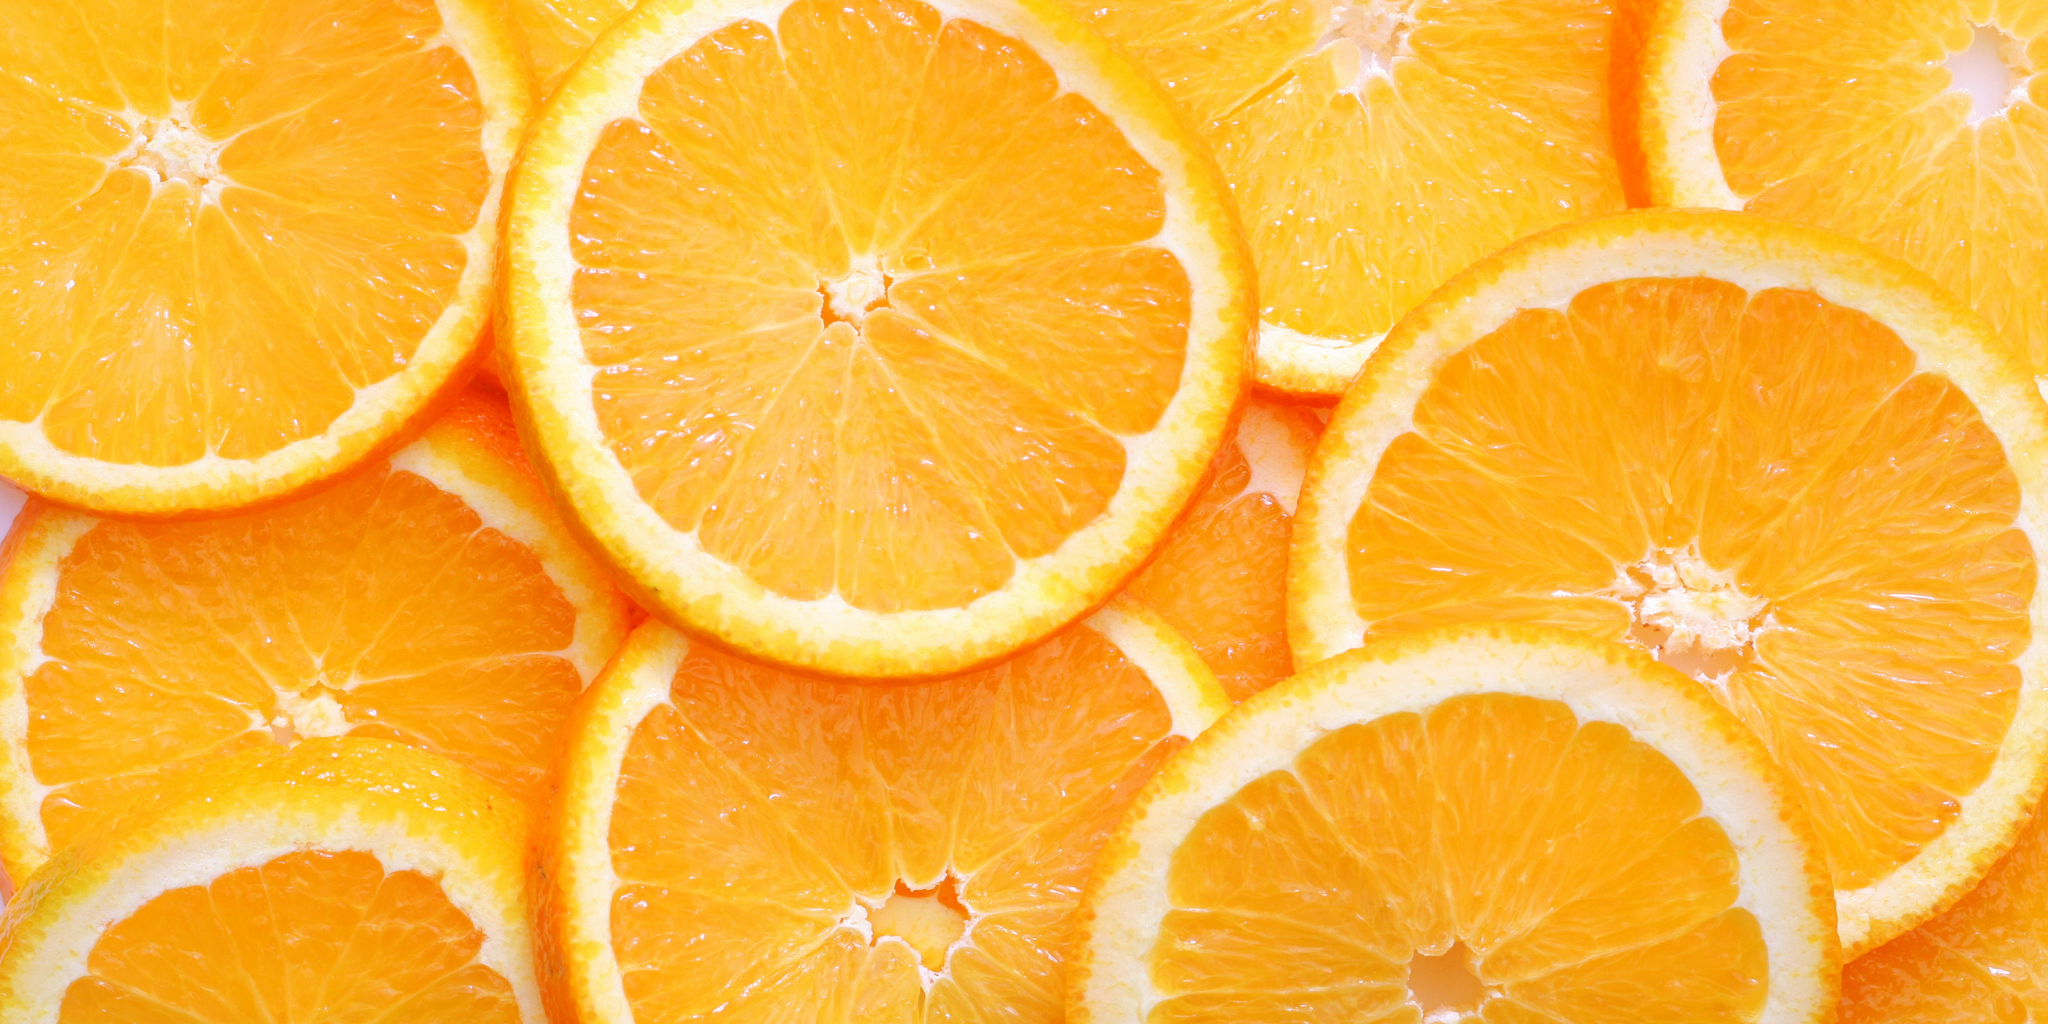 What is the best Vitamin C Supplement in the UK?